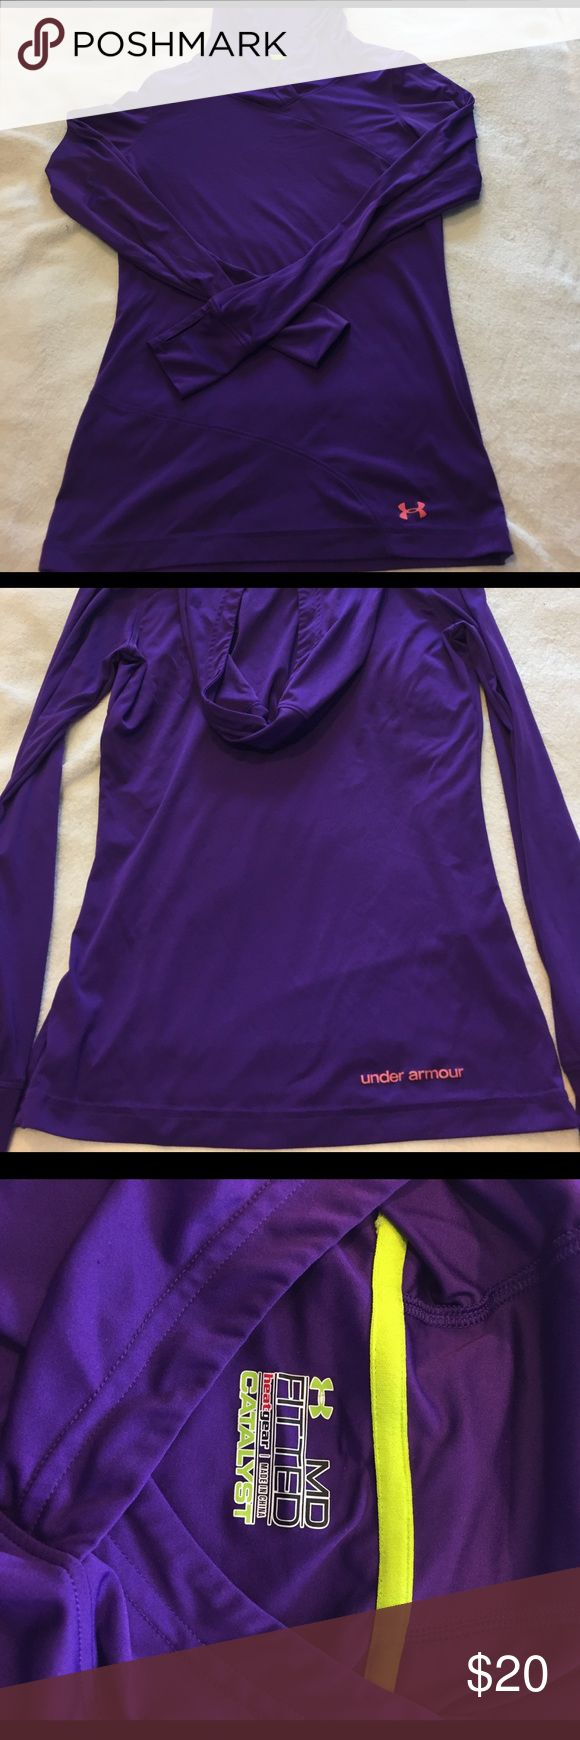 Under Armor Hooded Long Sleeve Top Purple Long Sleeve hooded Under Armour fitted heat gear top. Light long sleeve with thumb hole detail. Great condition. Size Medium. Under Armour Tops Tees - Long Sleeve